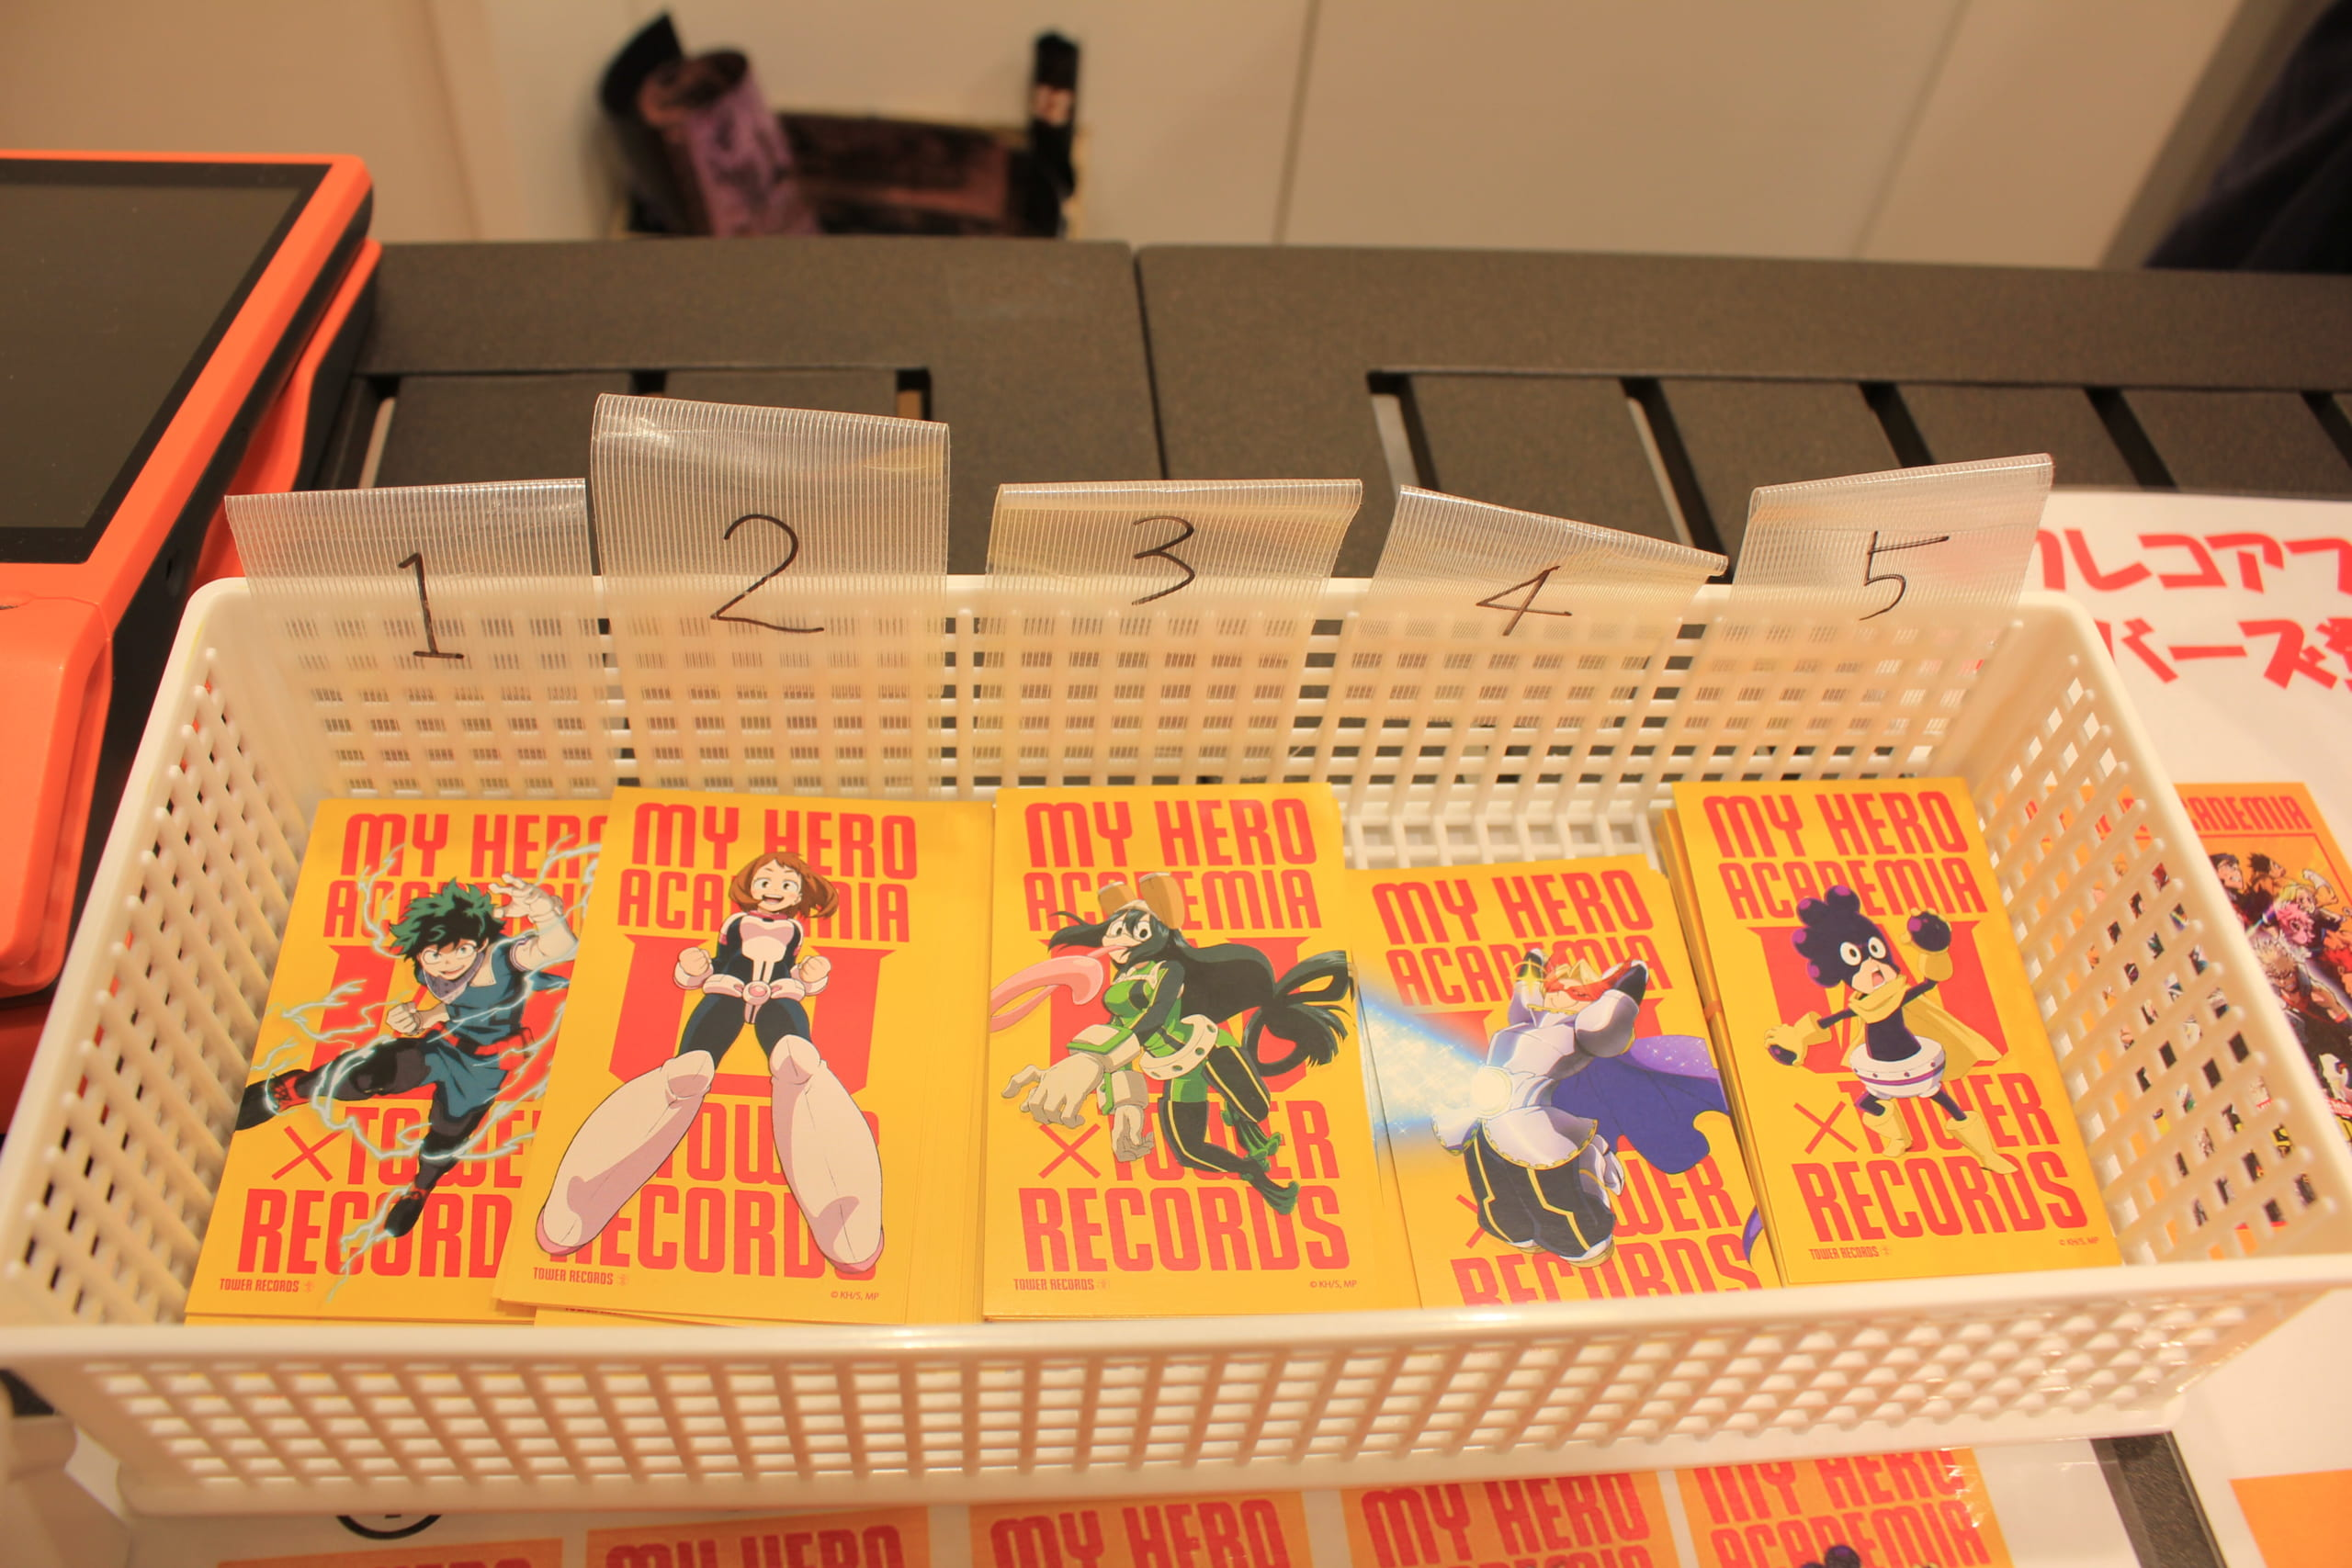 My Hero Academia character cards